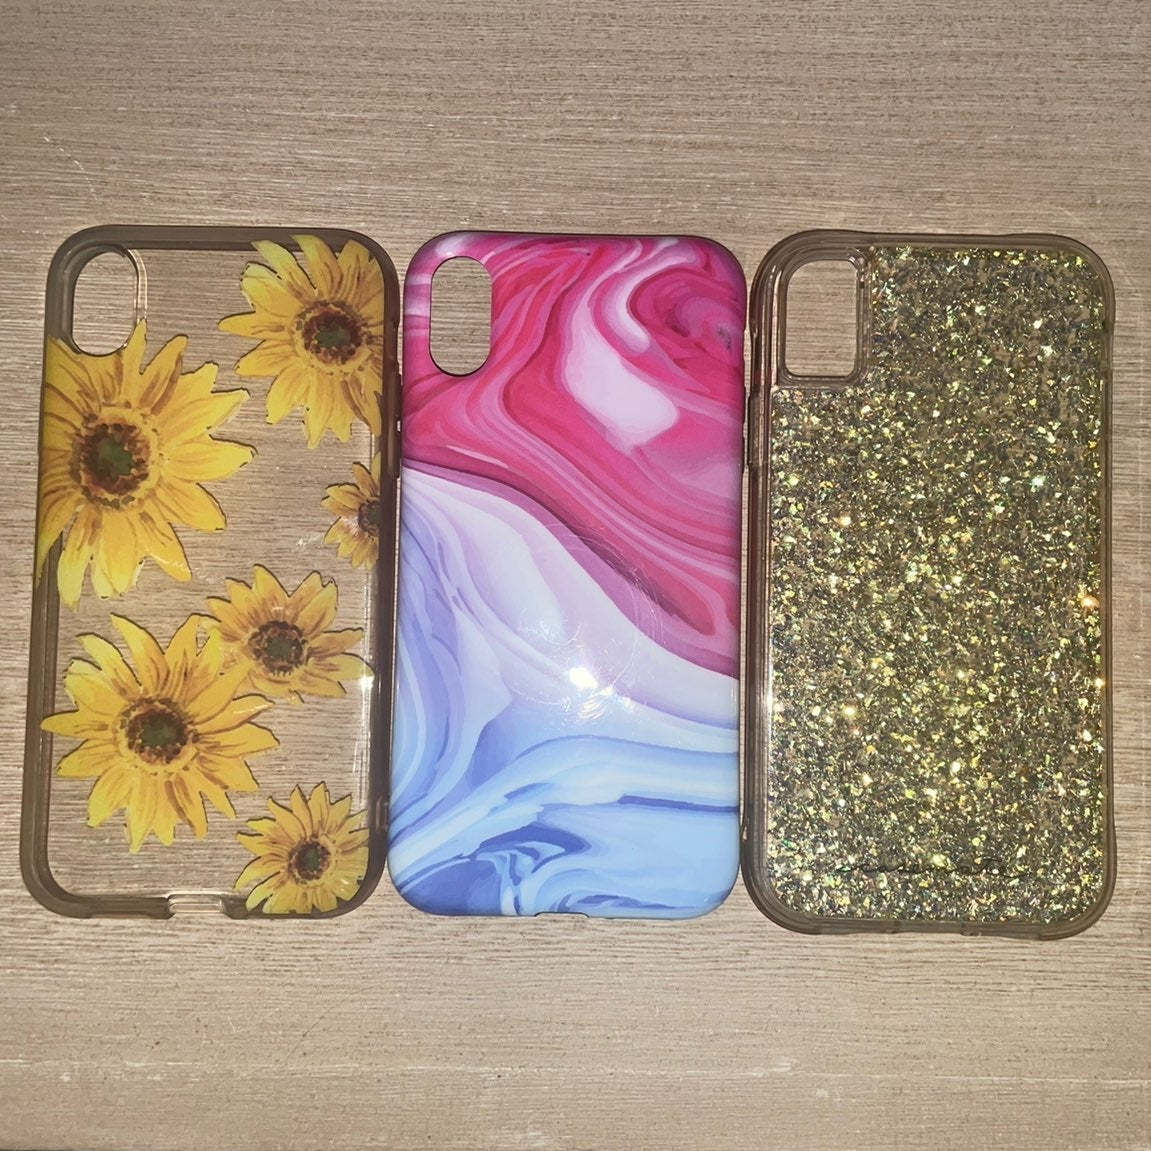 3 iPhone XR Cases